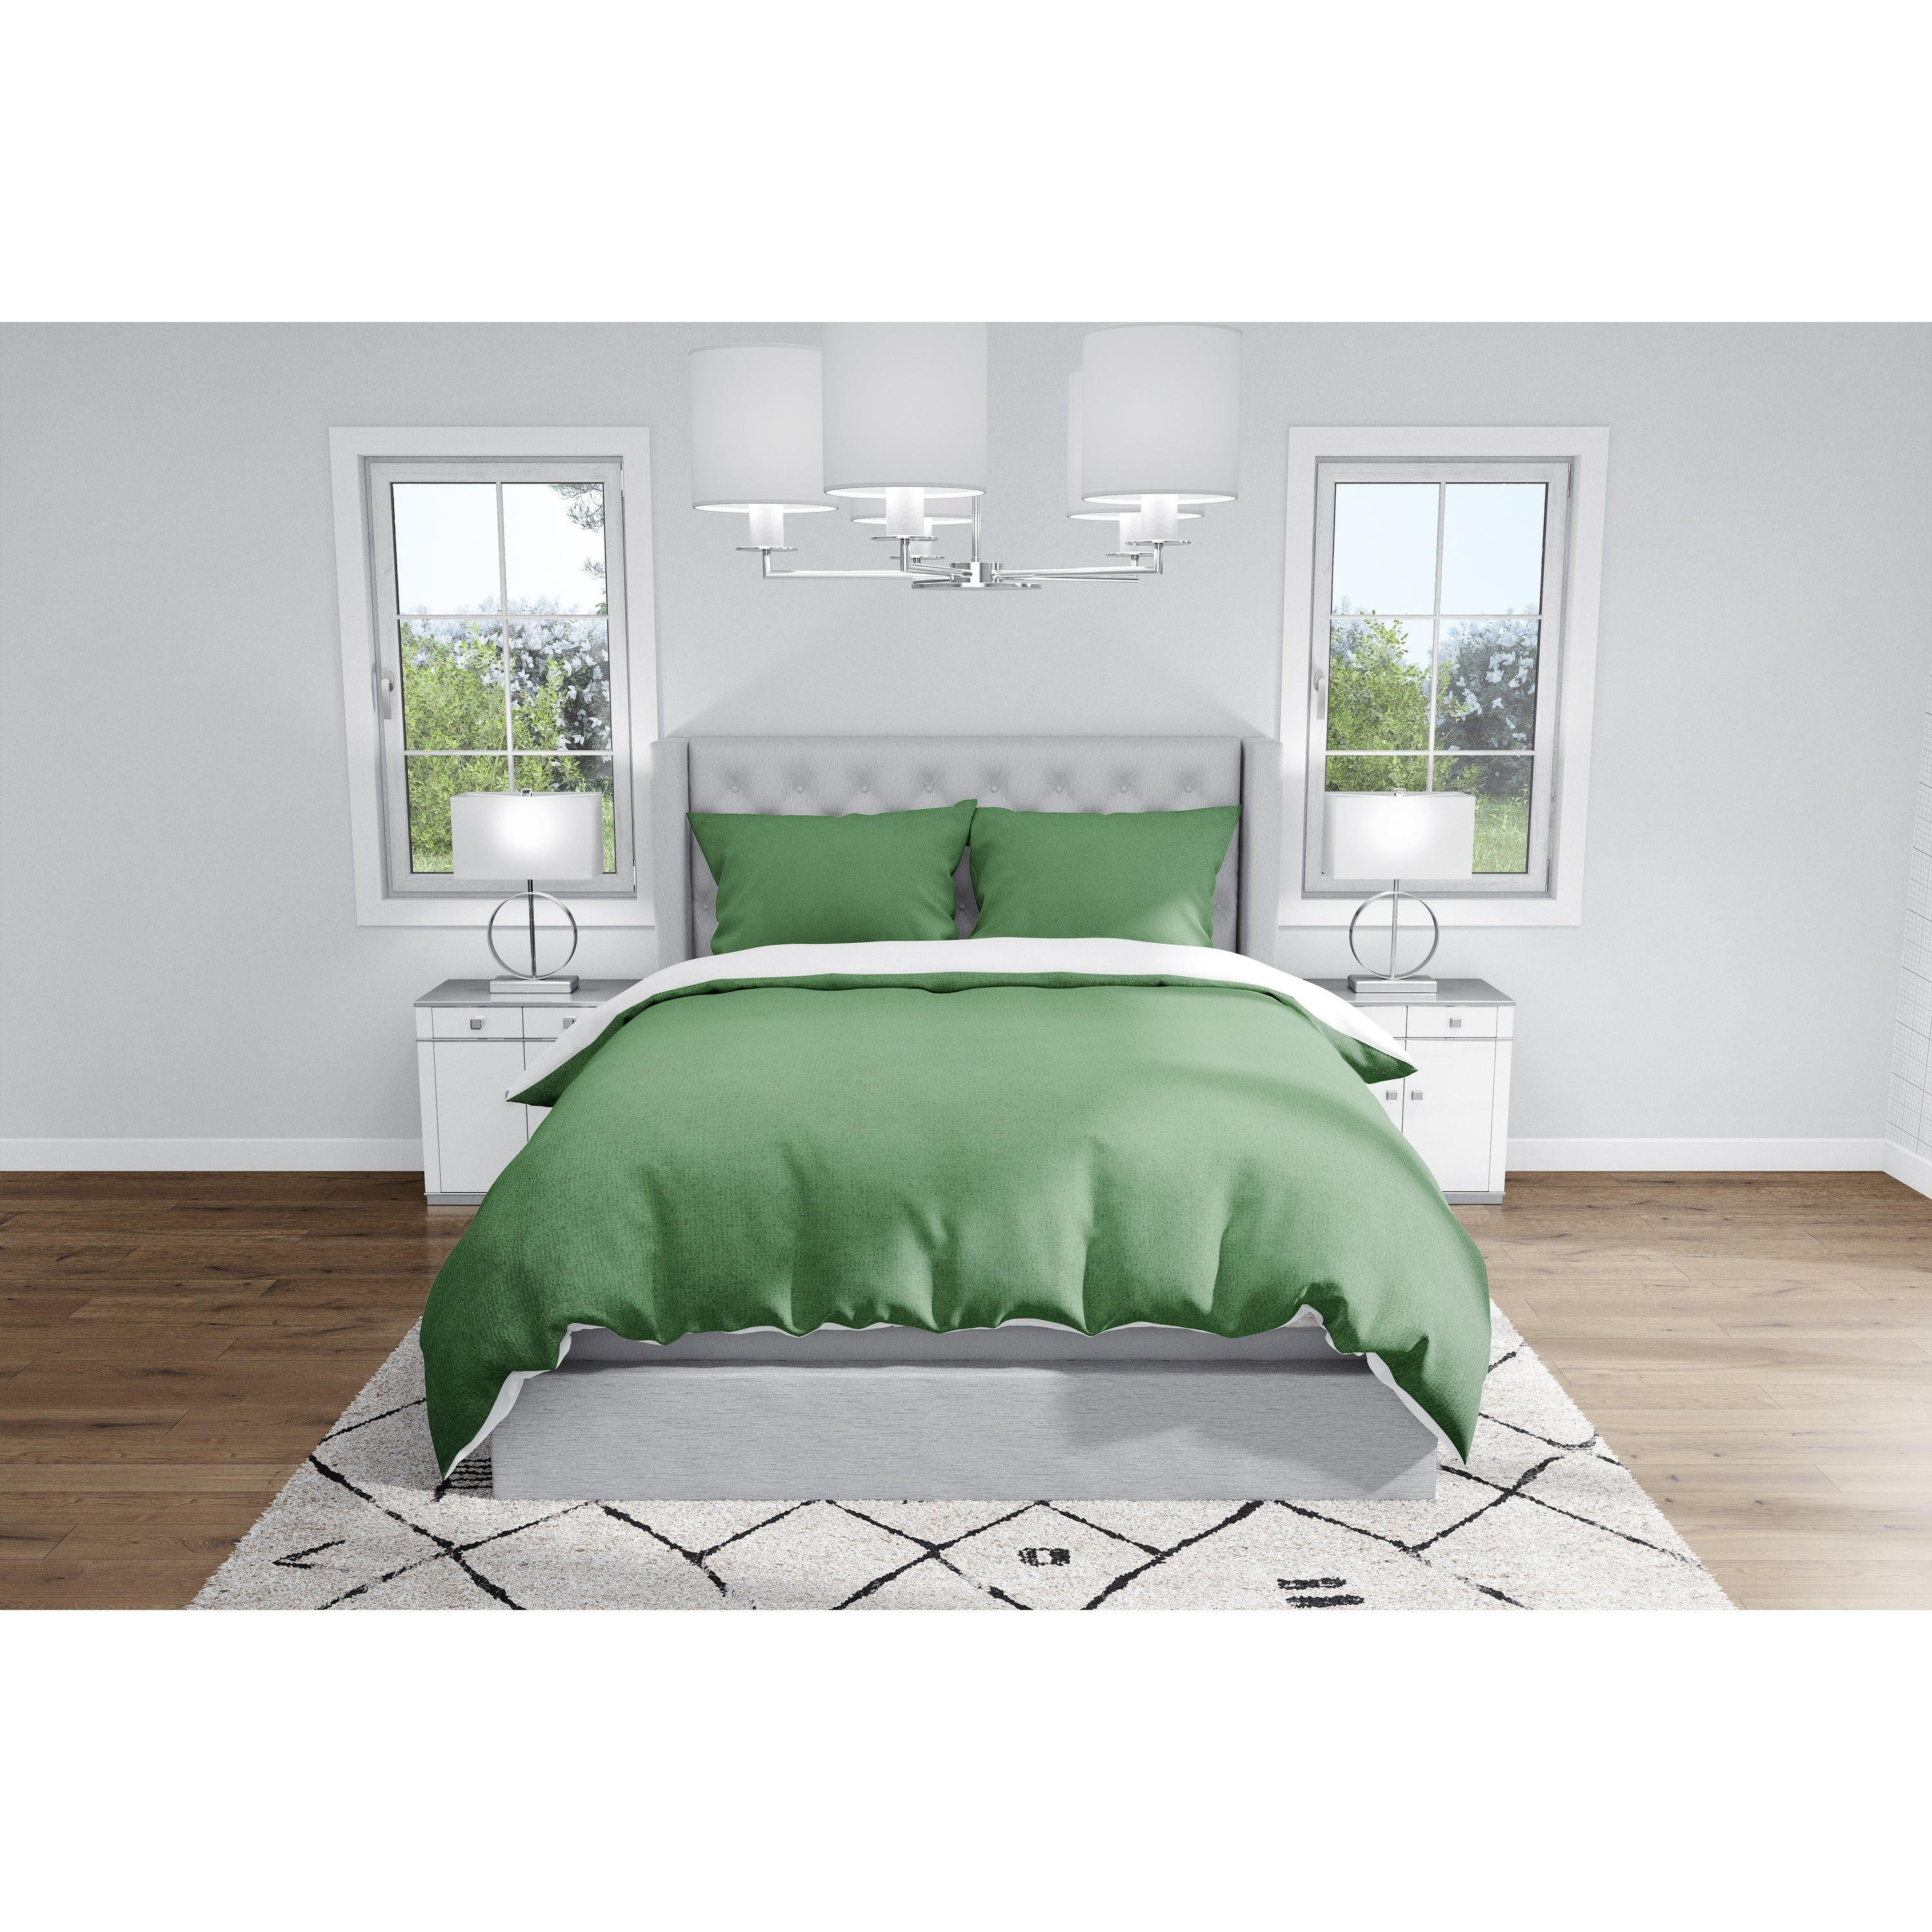 Ombre Emerald Duvet Cover By Kavka Designs On Sale Overstock 32092595